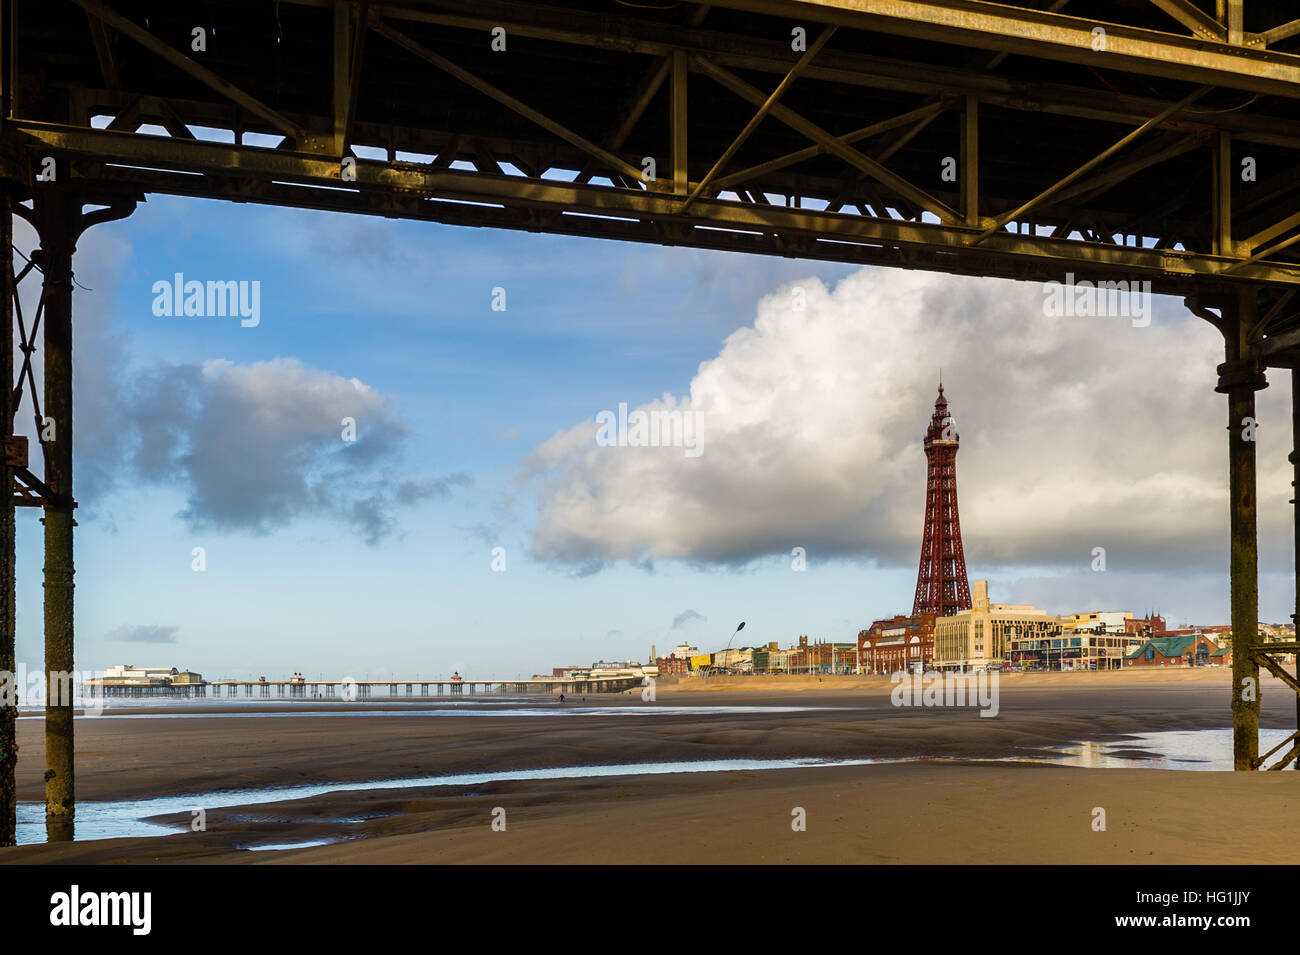 Blackpool Tower is pictured from under Central Pier, Blackpool, Lancashire, United Kingdom. - Stock Image